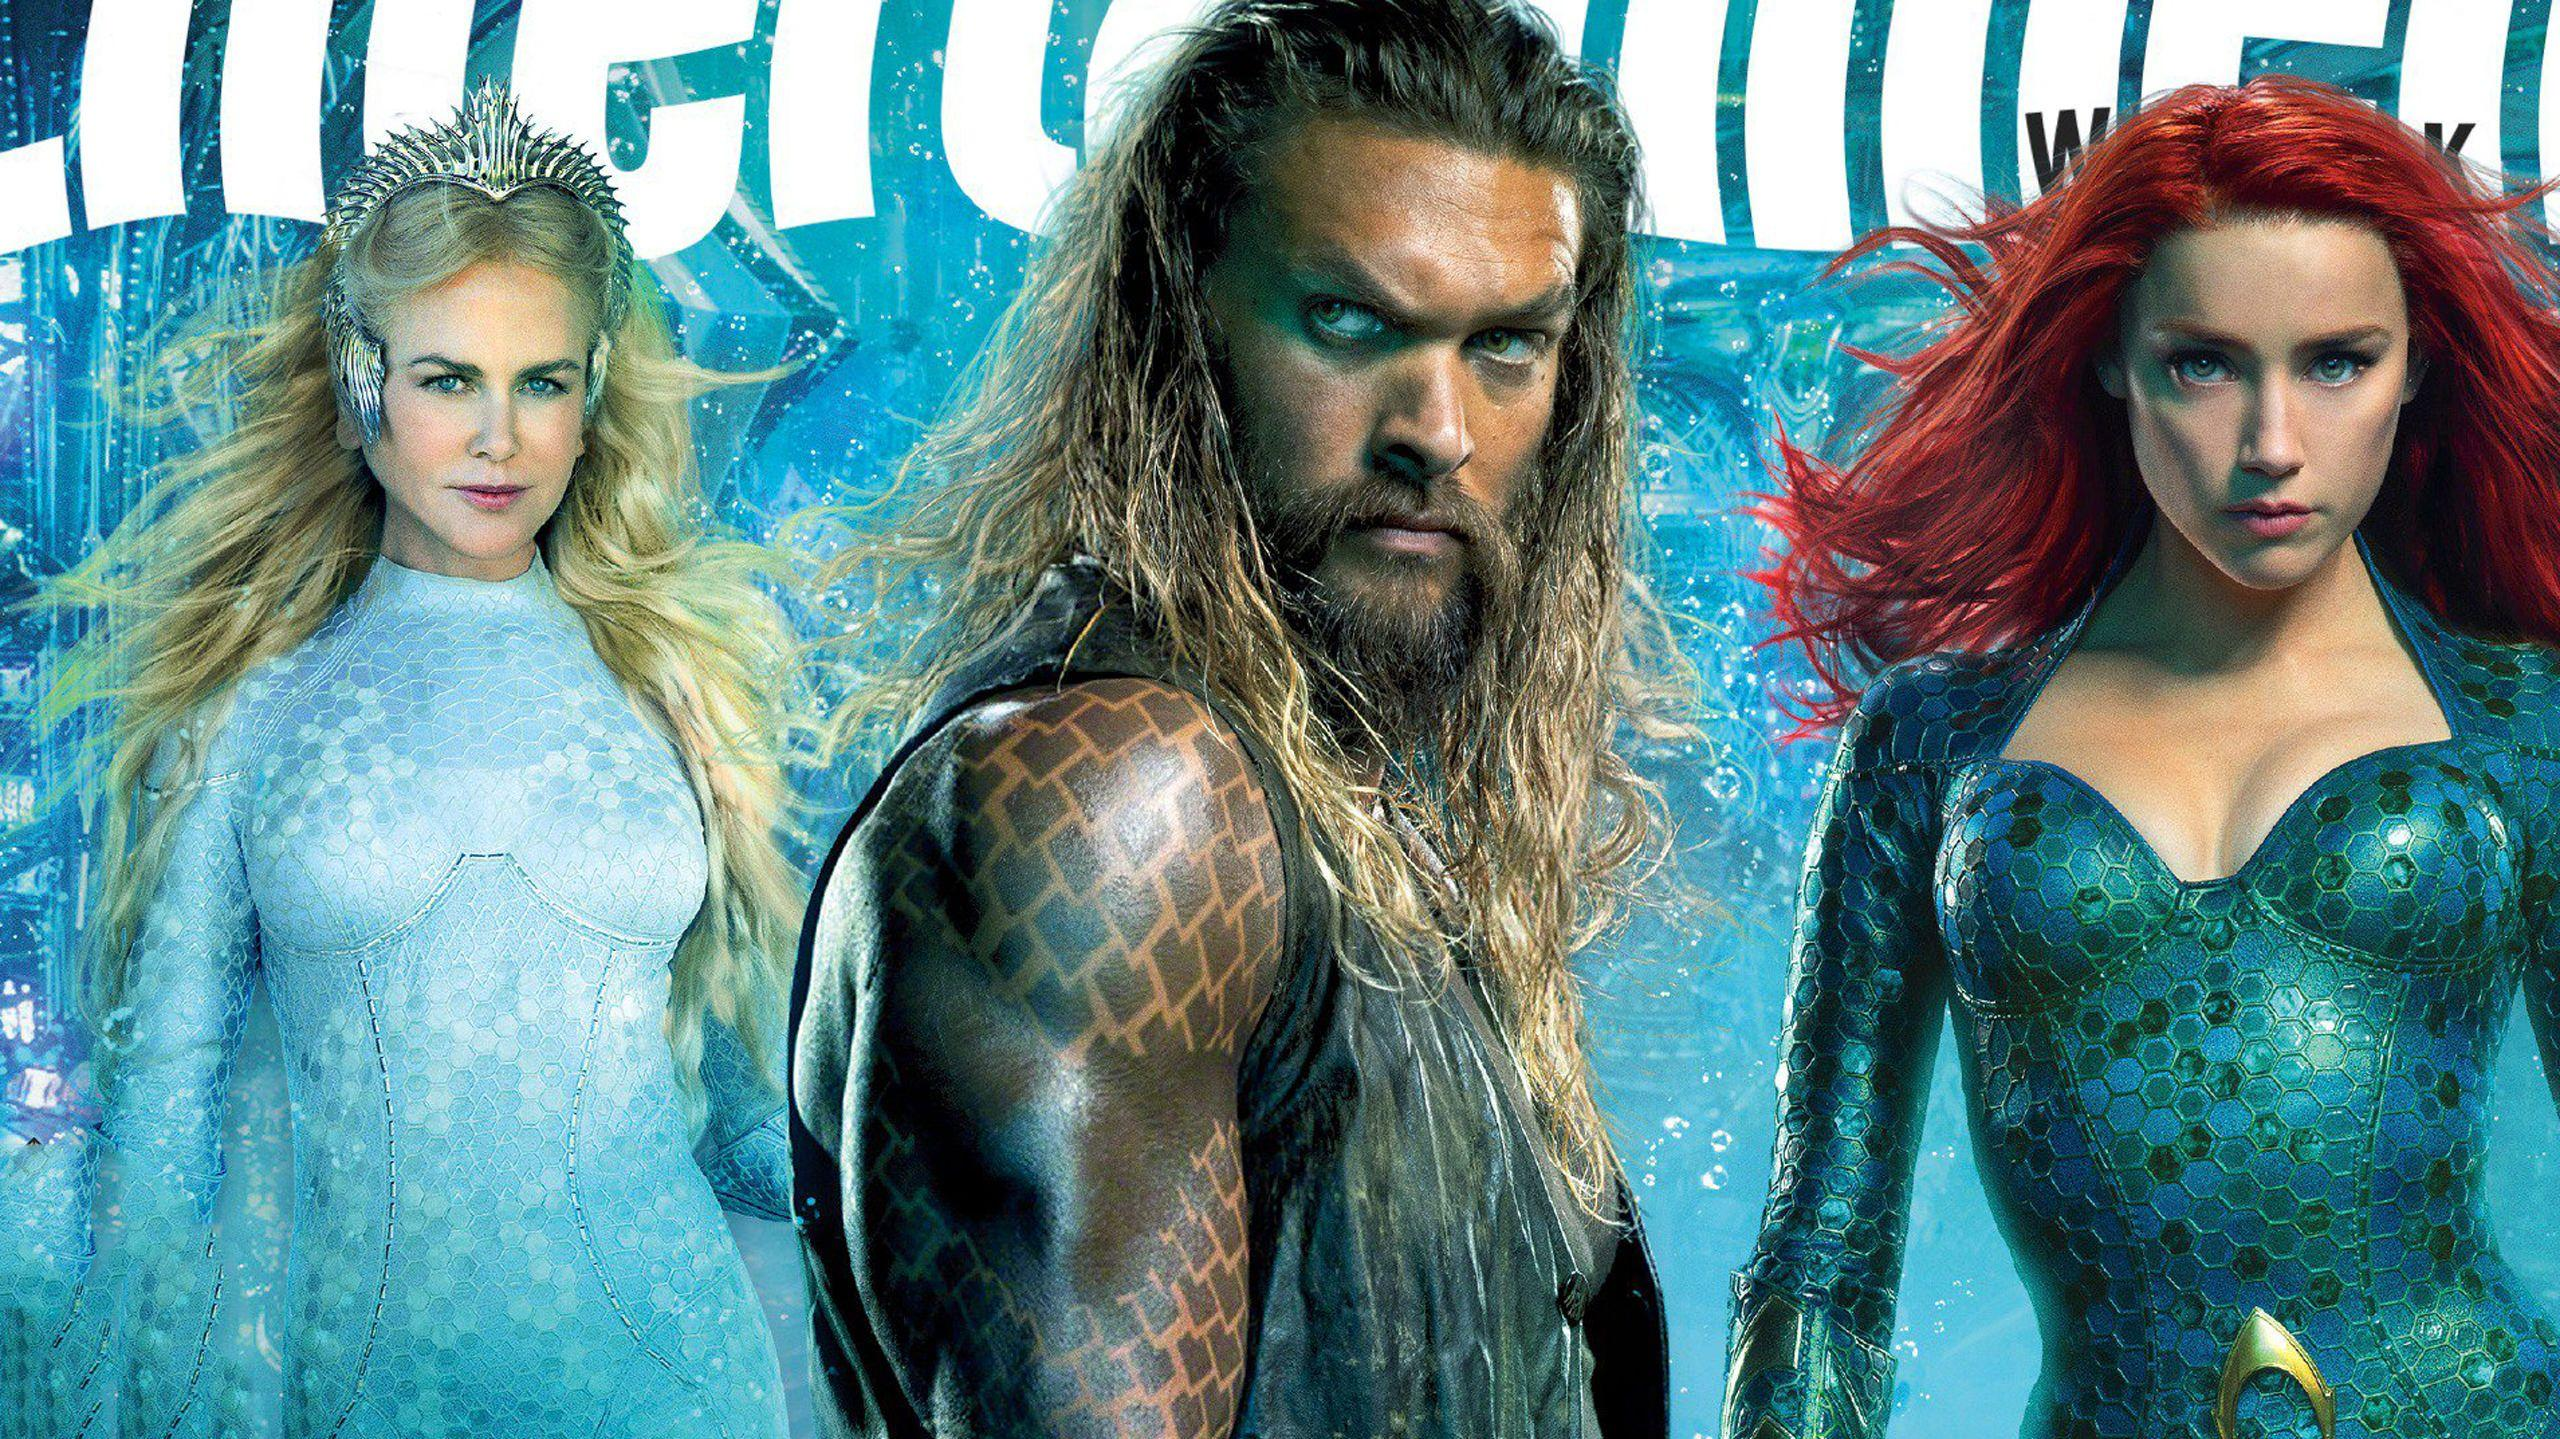 2018 Aquaman Movie, HD Movies, 4k Wallpapers, Images, Backgrounds ...